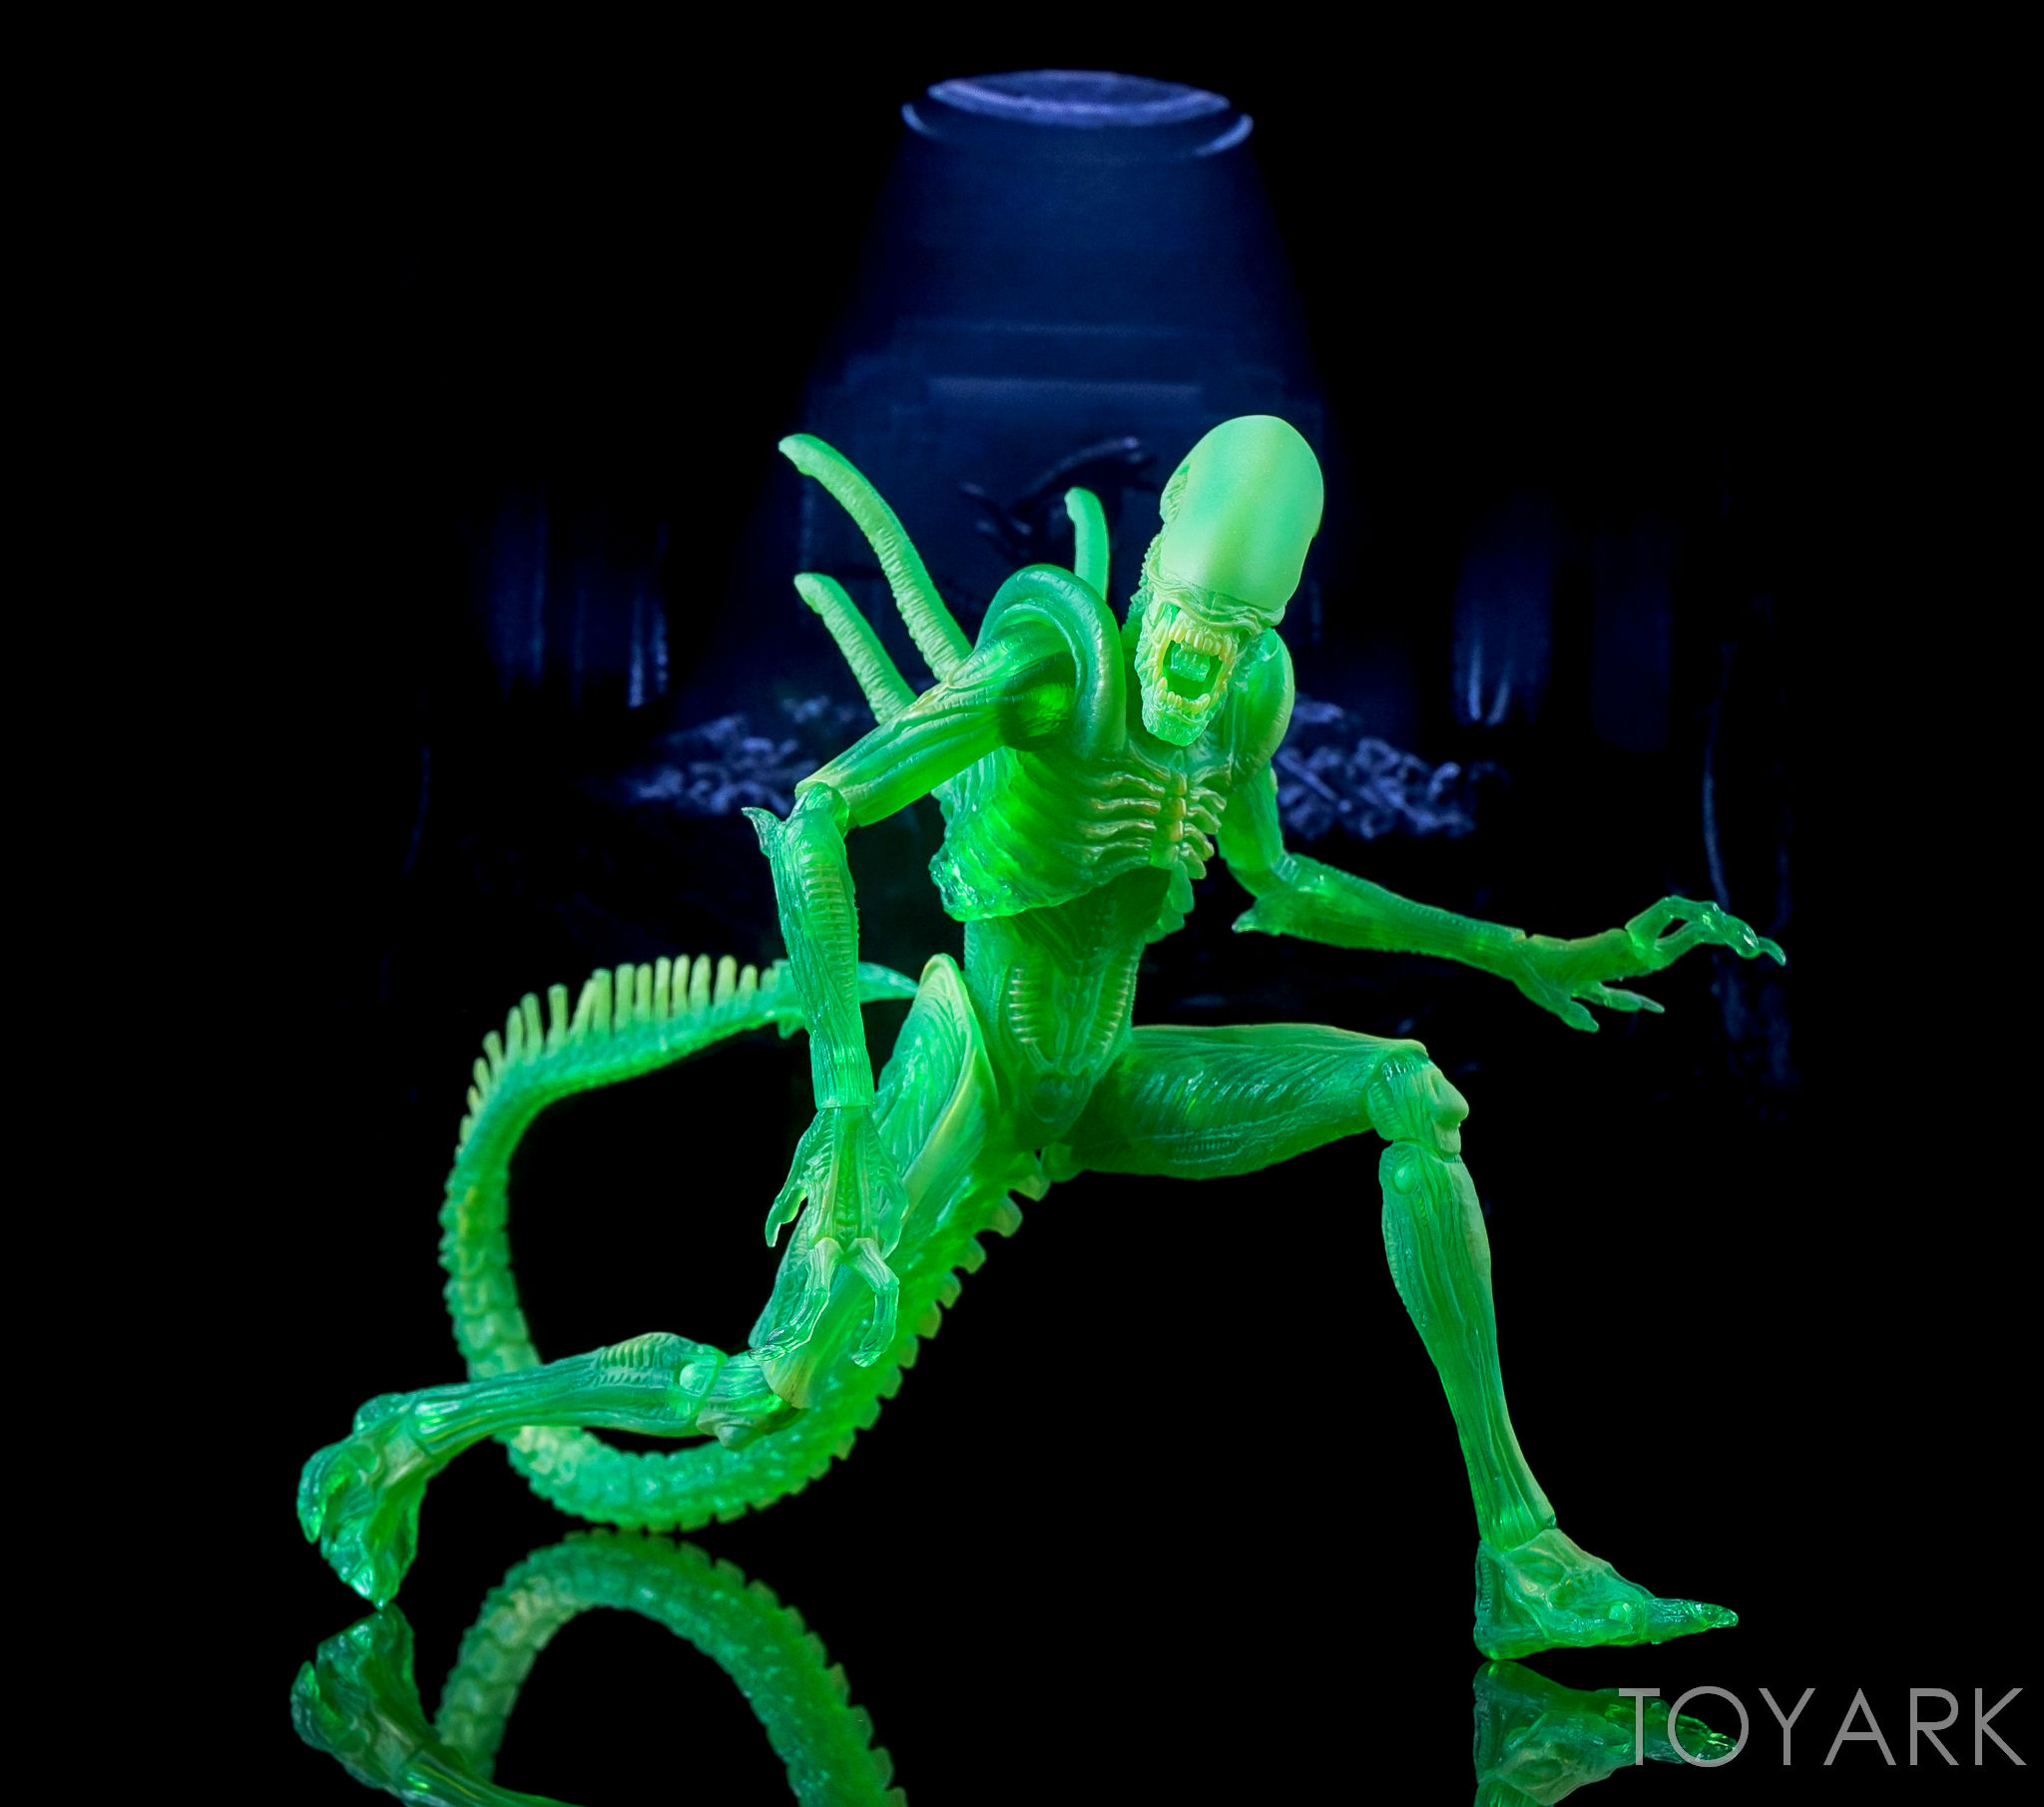 http://news.toyark.com/wp-content/uploads/sites/4/2016/09/NECA-AvP-Thermal-Vision-Alien-034.jpg